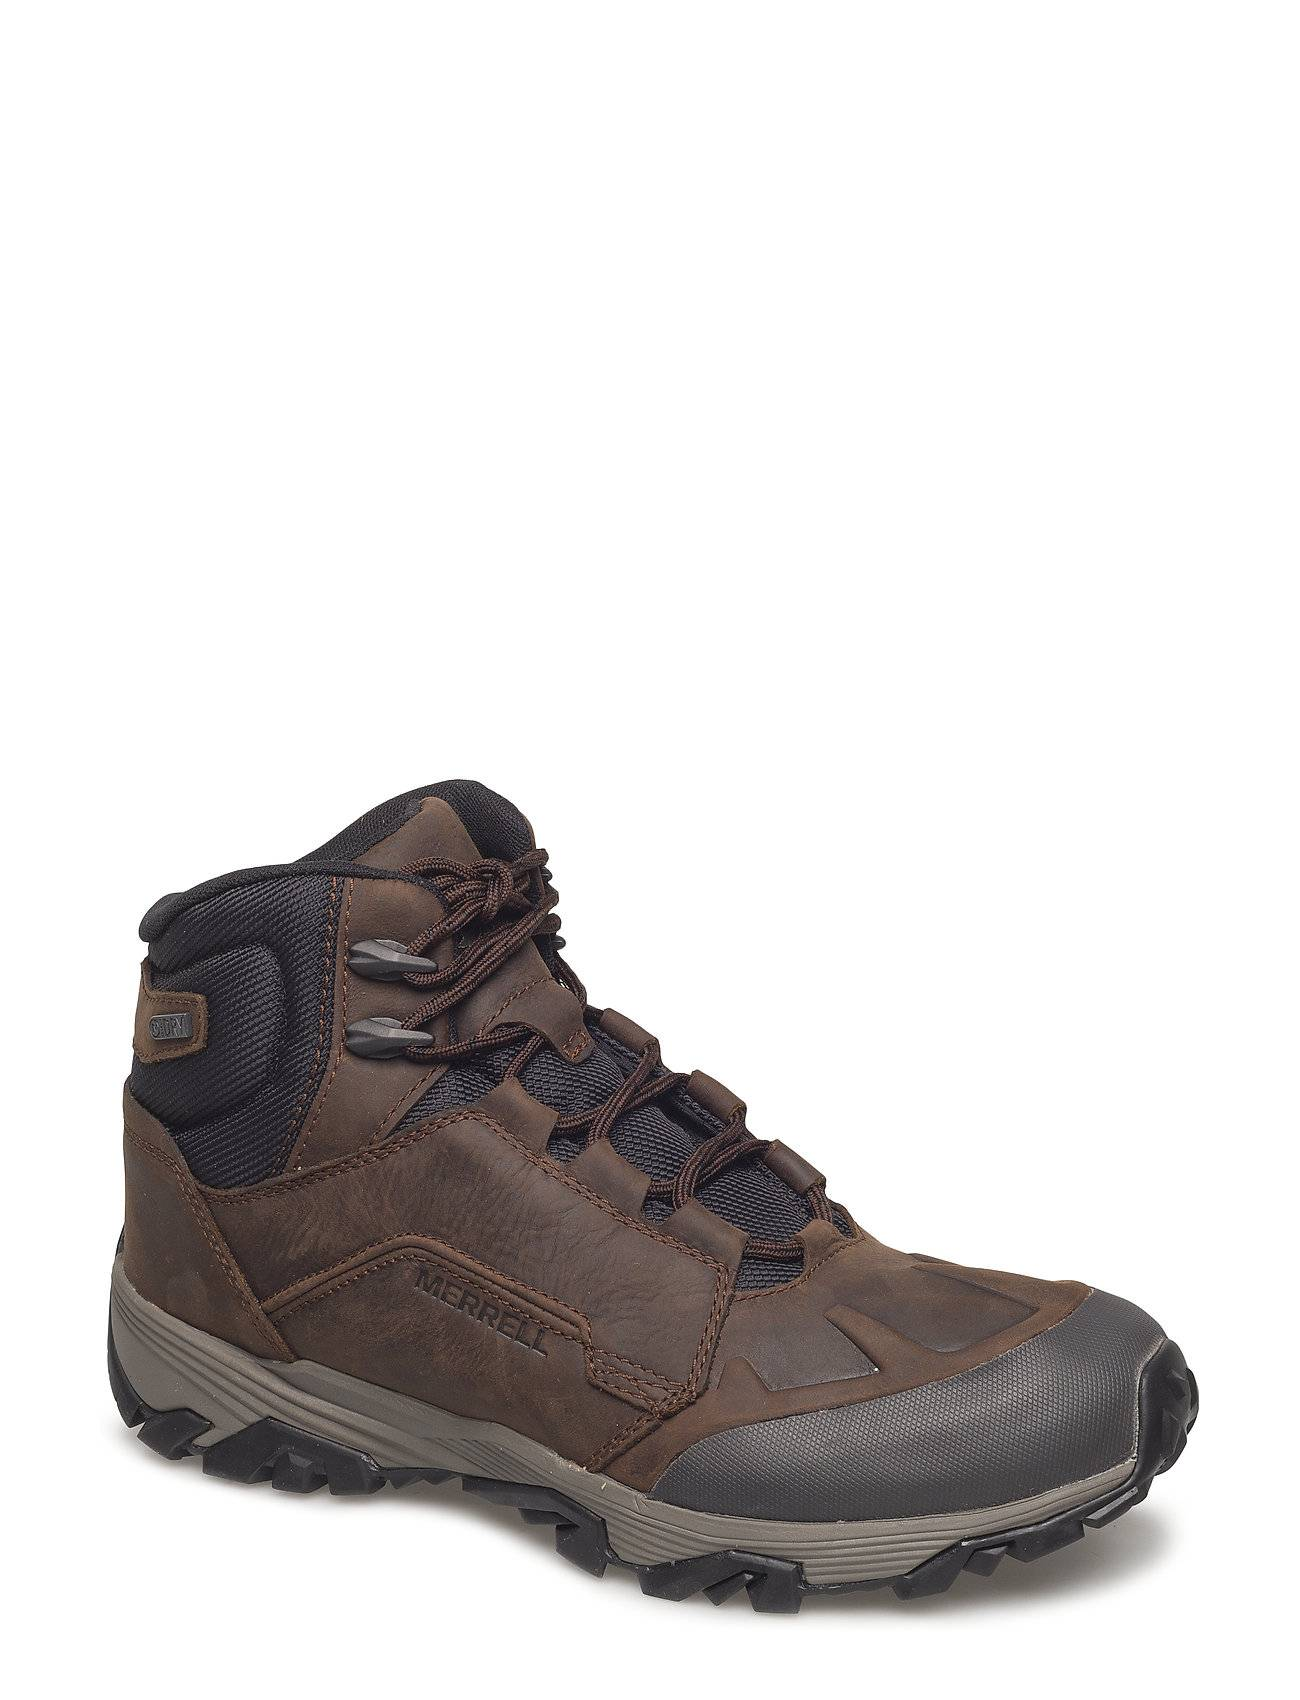 Merrell Coldpack Ice + Mid Wtpf